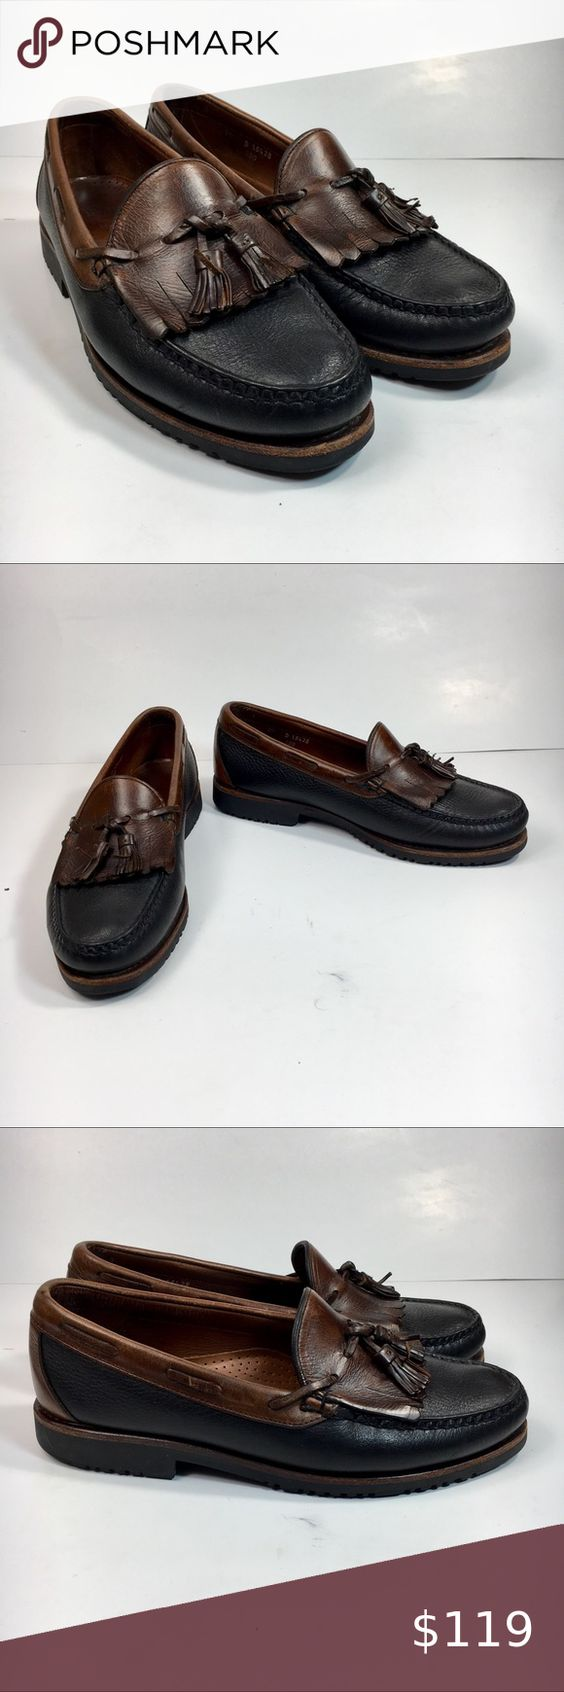 Allen Edmonds Nashua Men 10 Kiltie Tassel Loafers Allen Edmonds Nashua Men 10 D Brown Leather Kiltie Tassel Loafer Dress Shoes Preowned in great condition with minor wear on the bottoms. Allen Edmonds Shoes Loafers & Slip-Ons